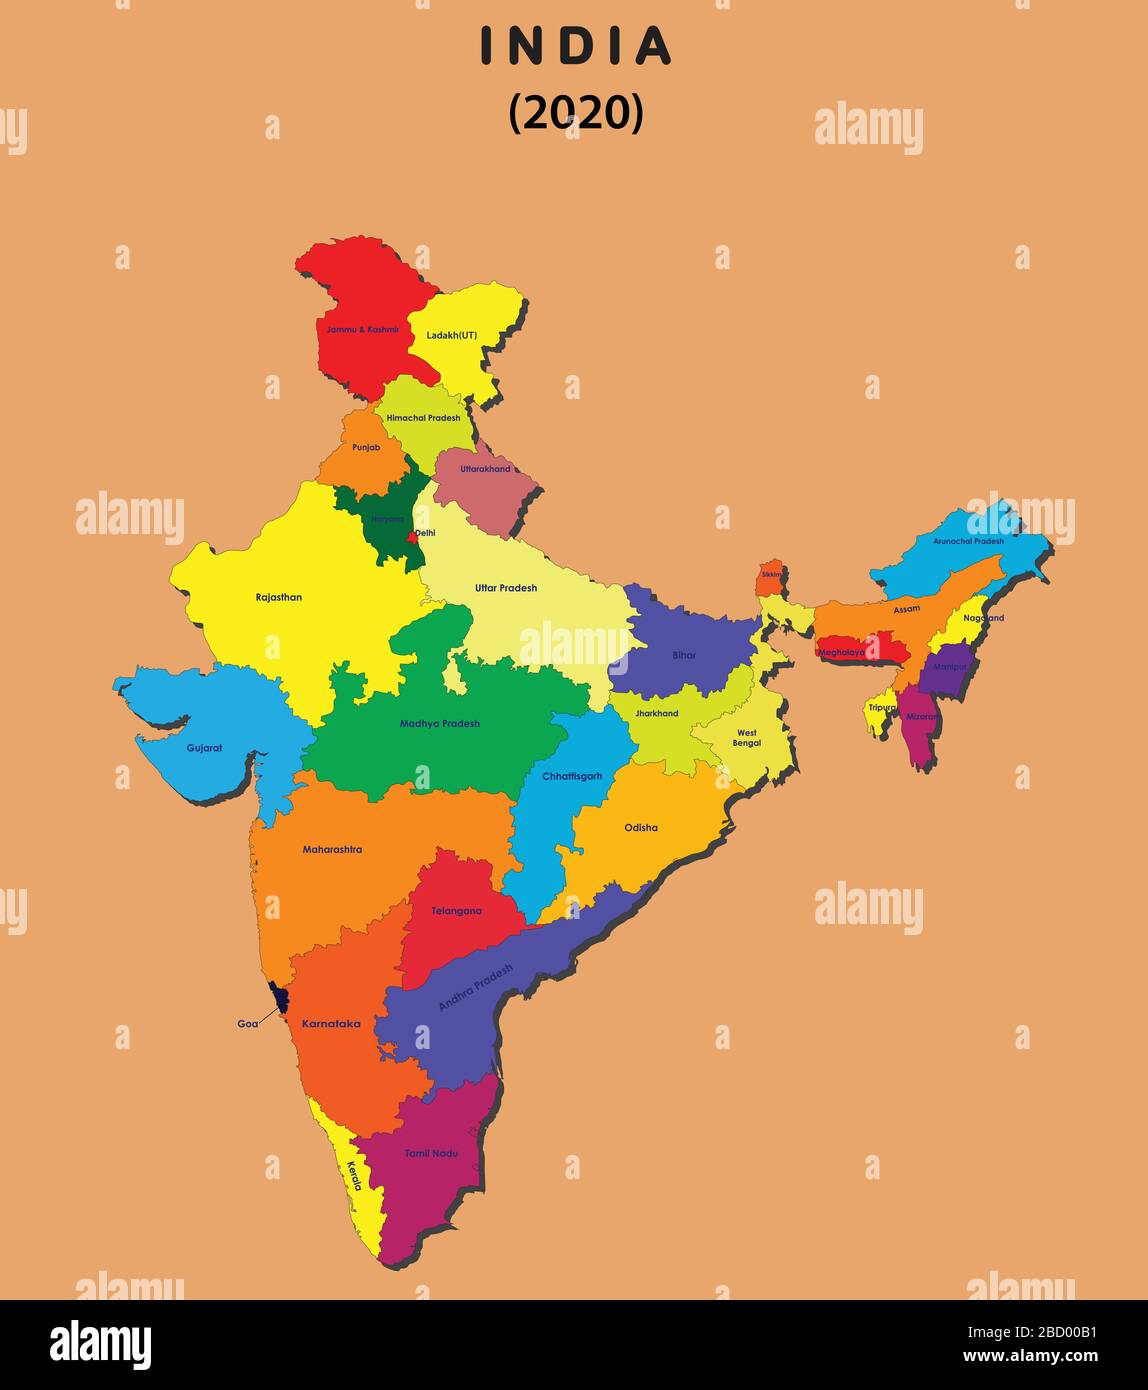 Picture of: India Map With States High Resolution Stock Photography And Images Alamy